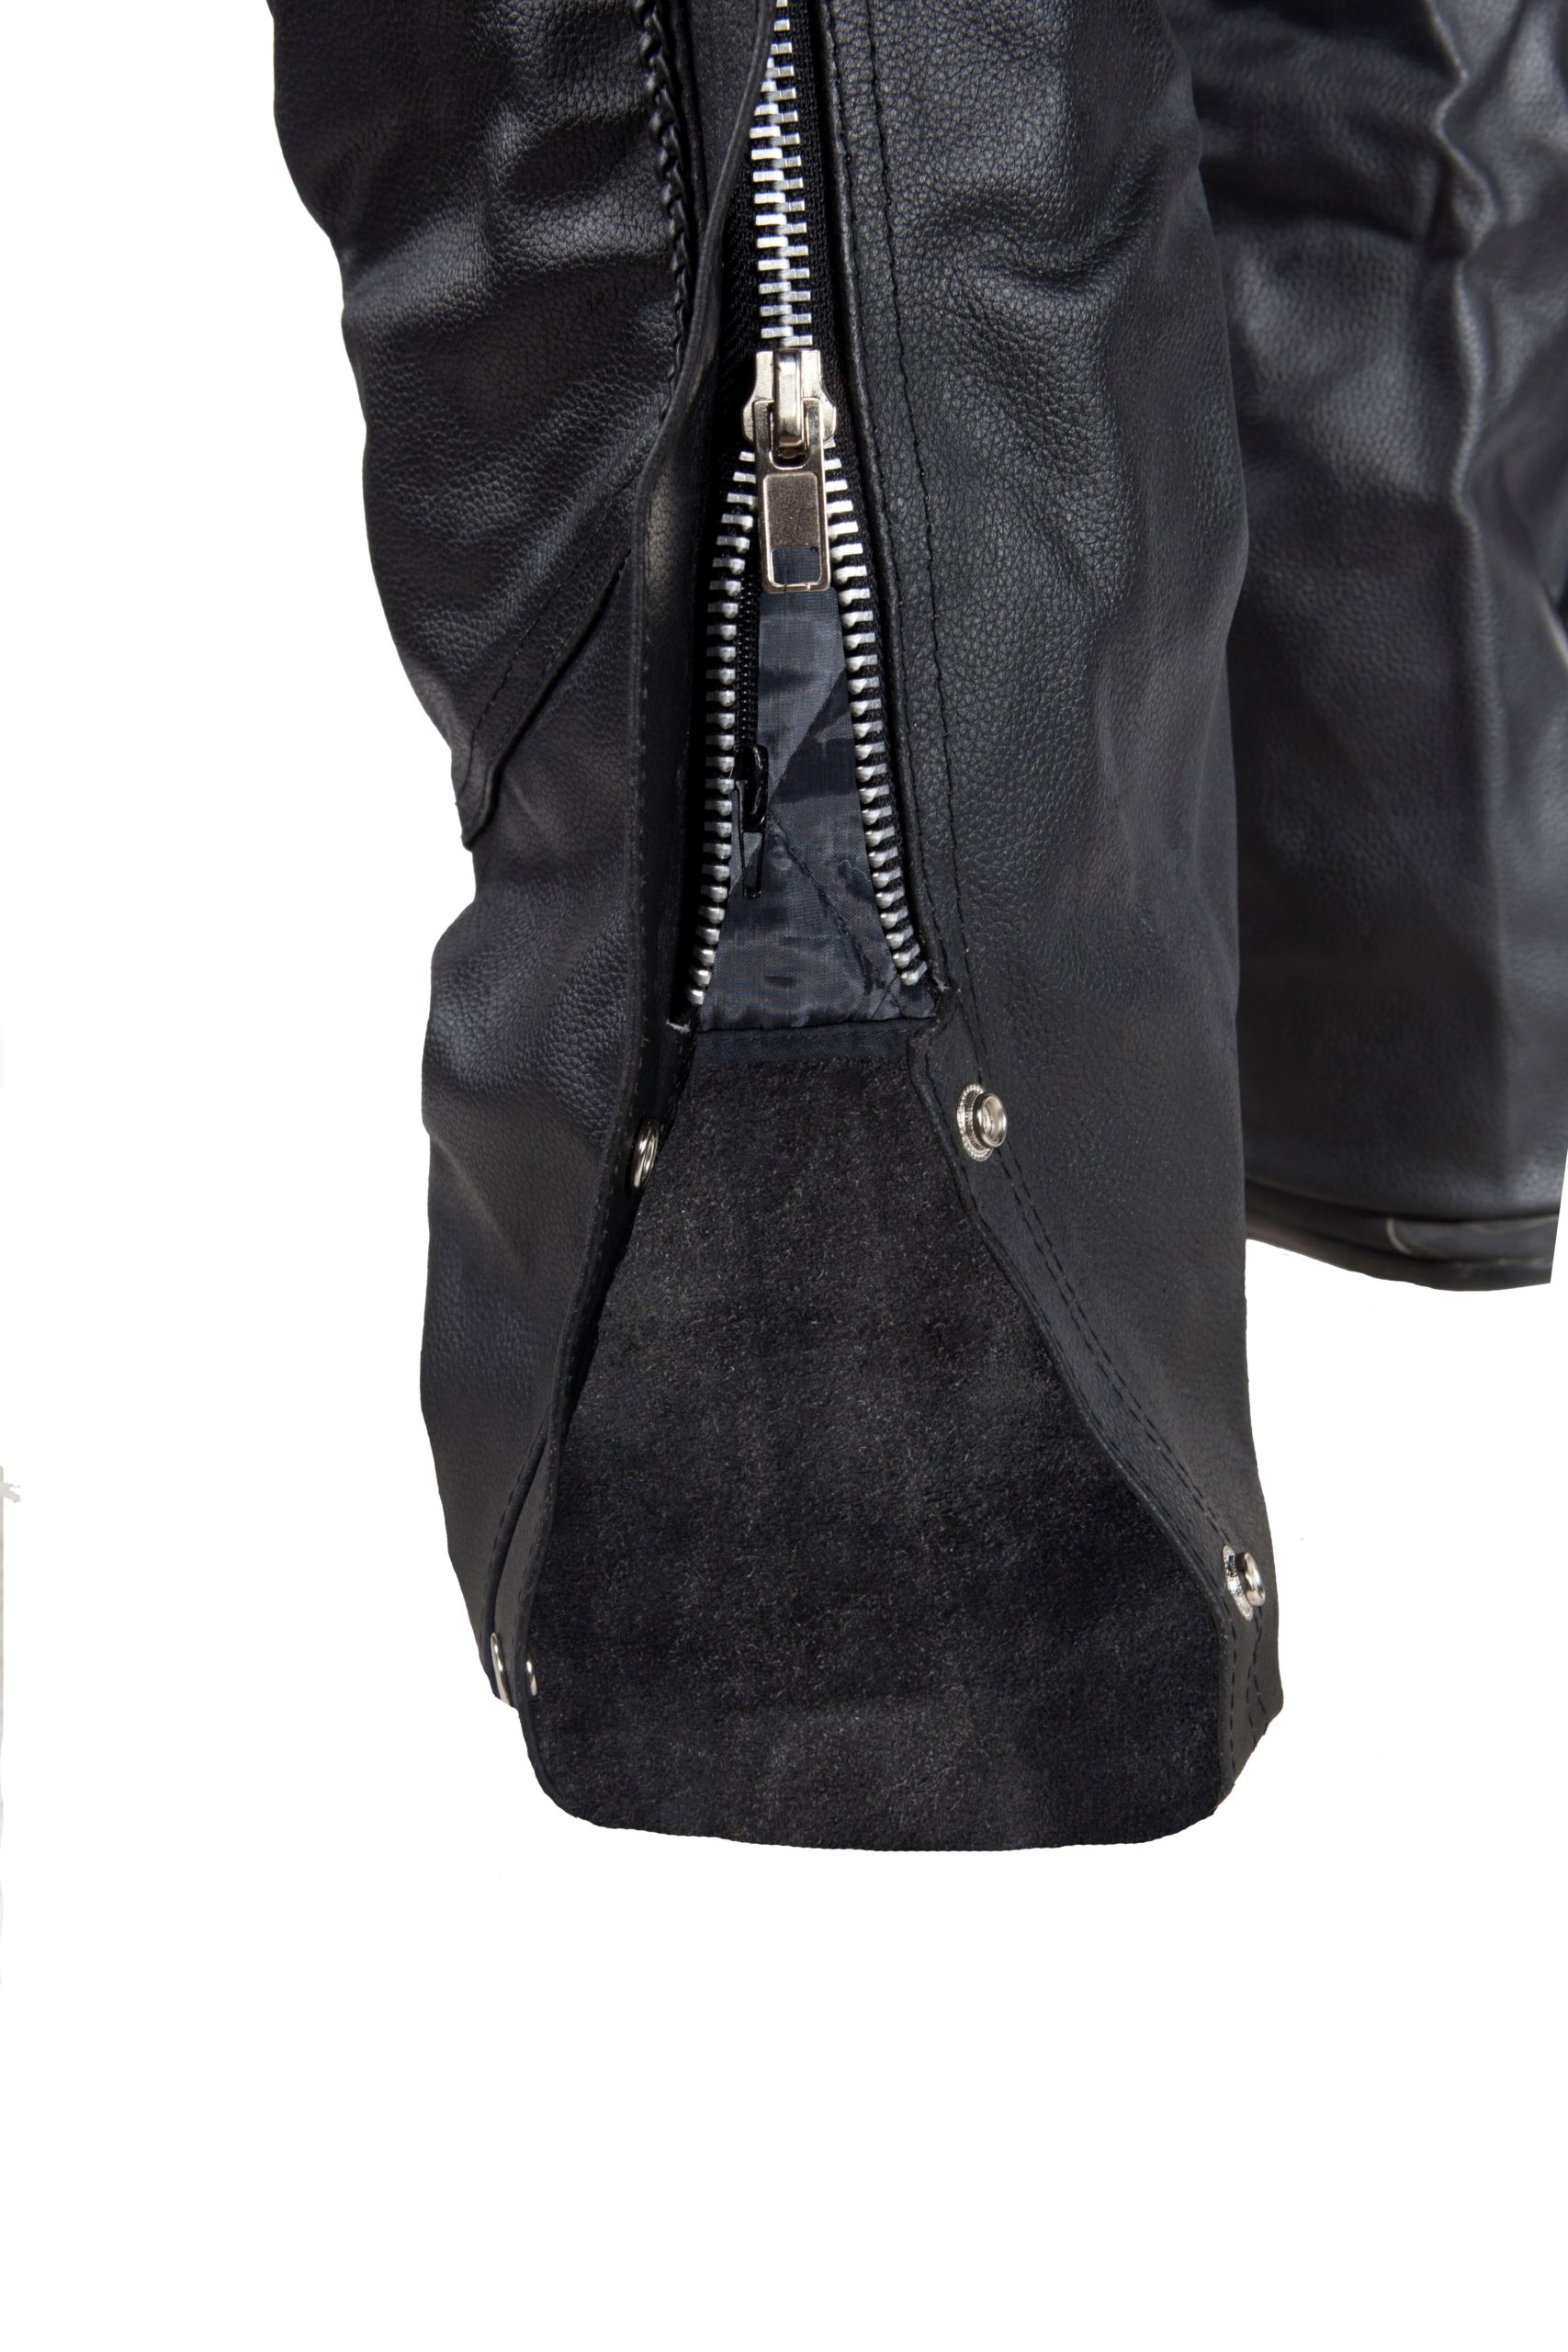 Black Riding Leather Chap with Zipper